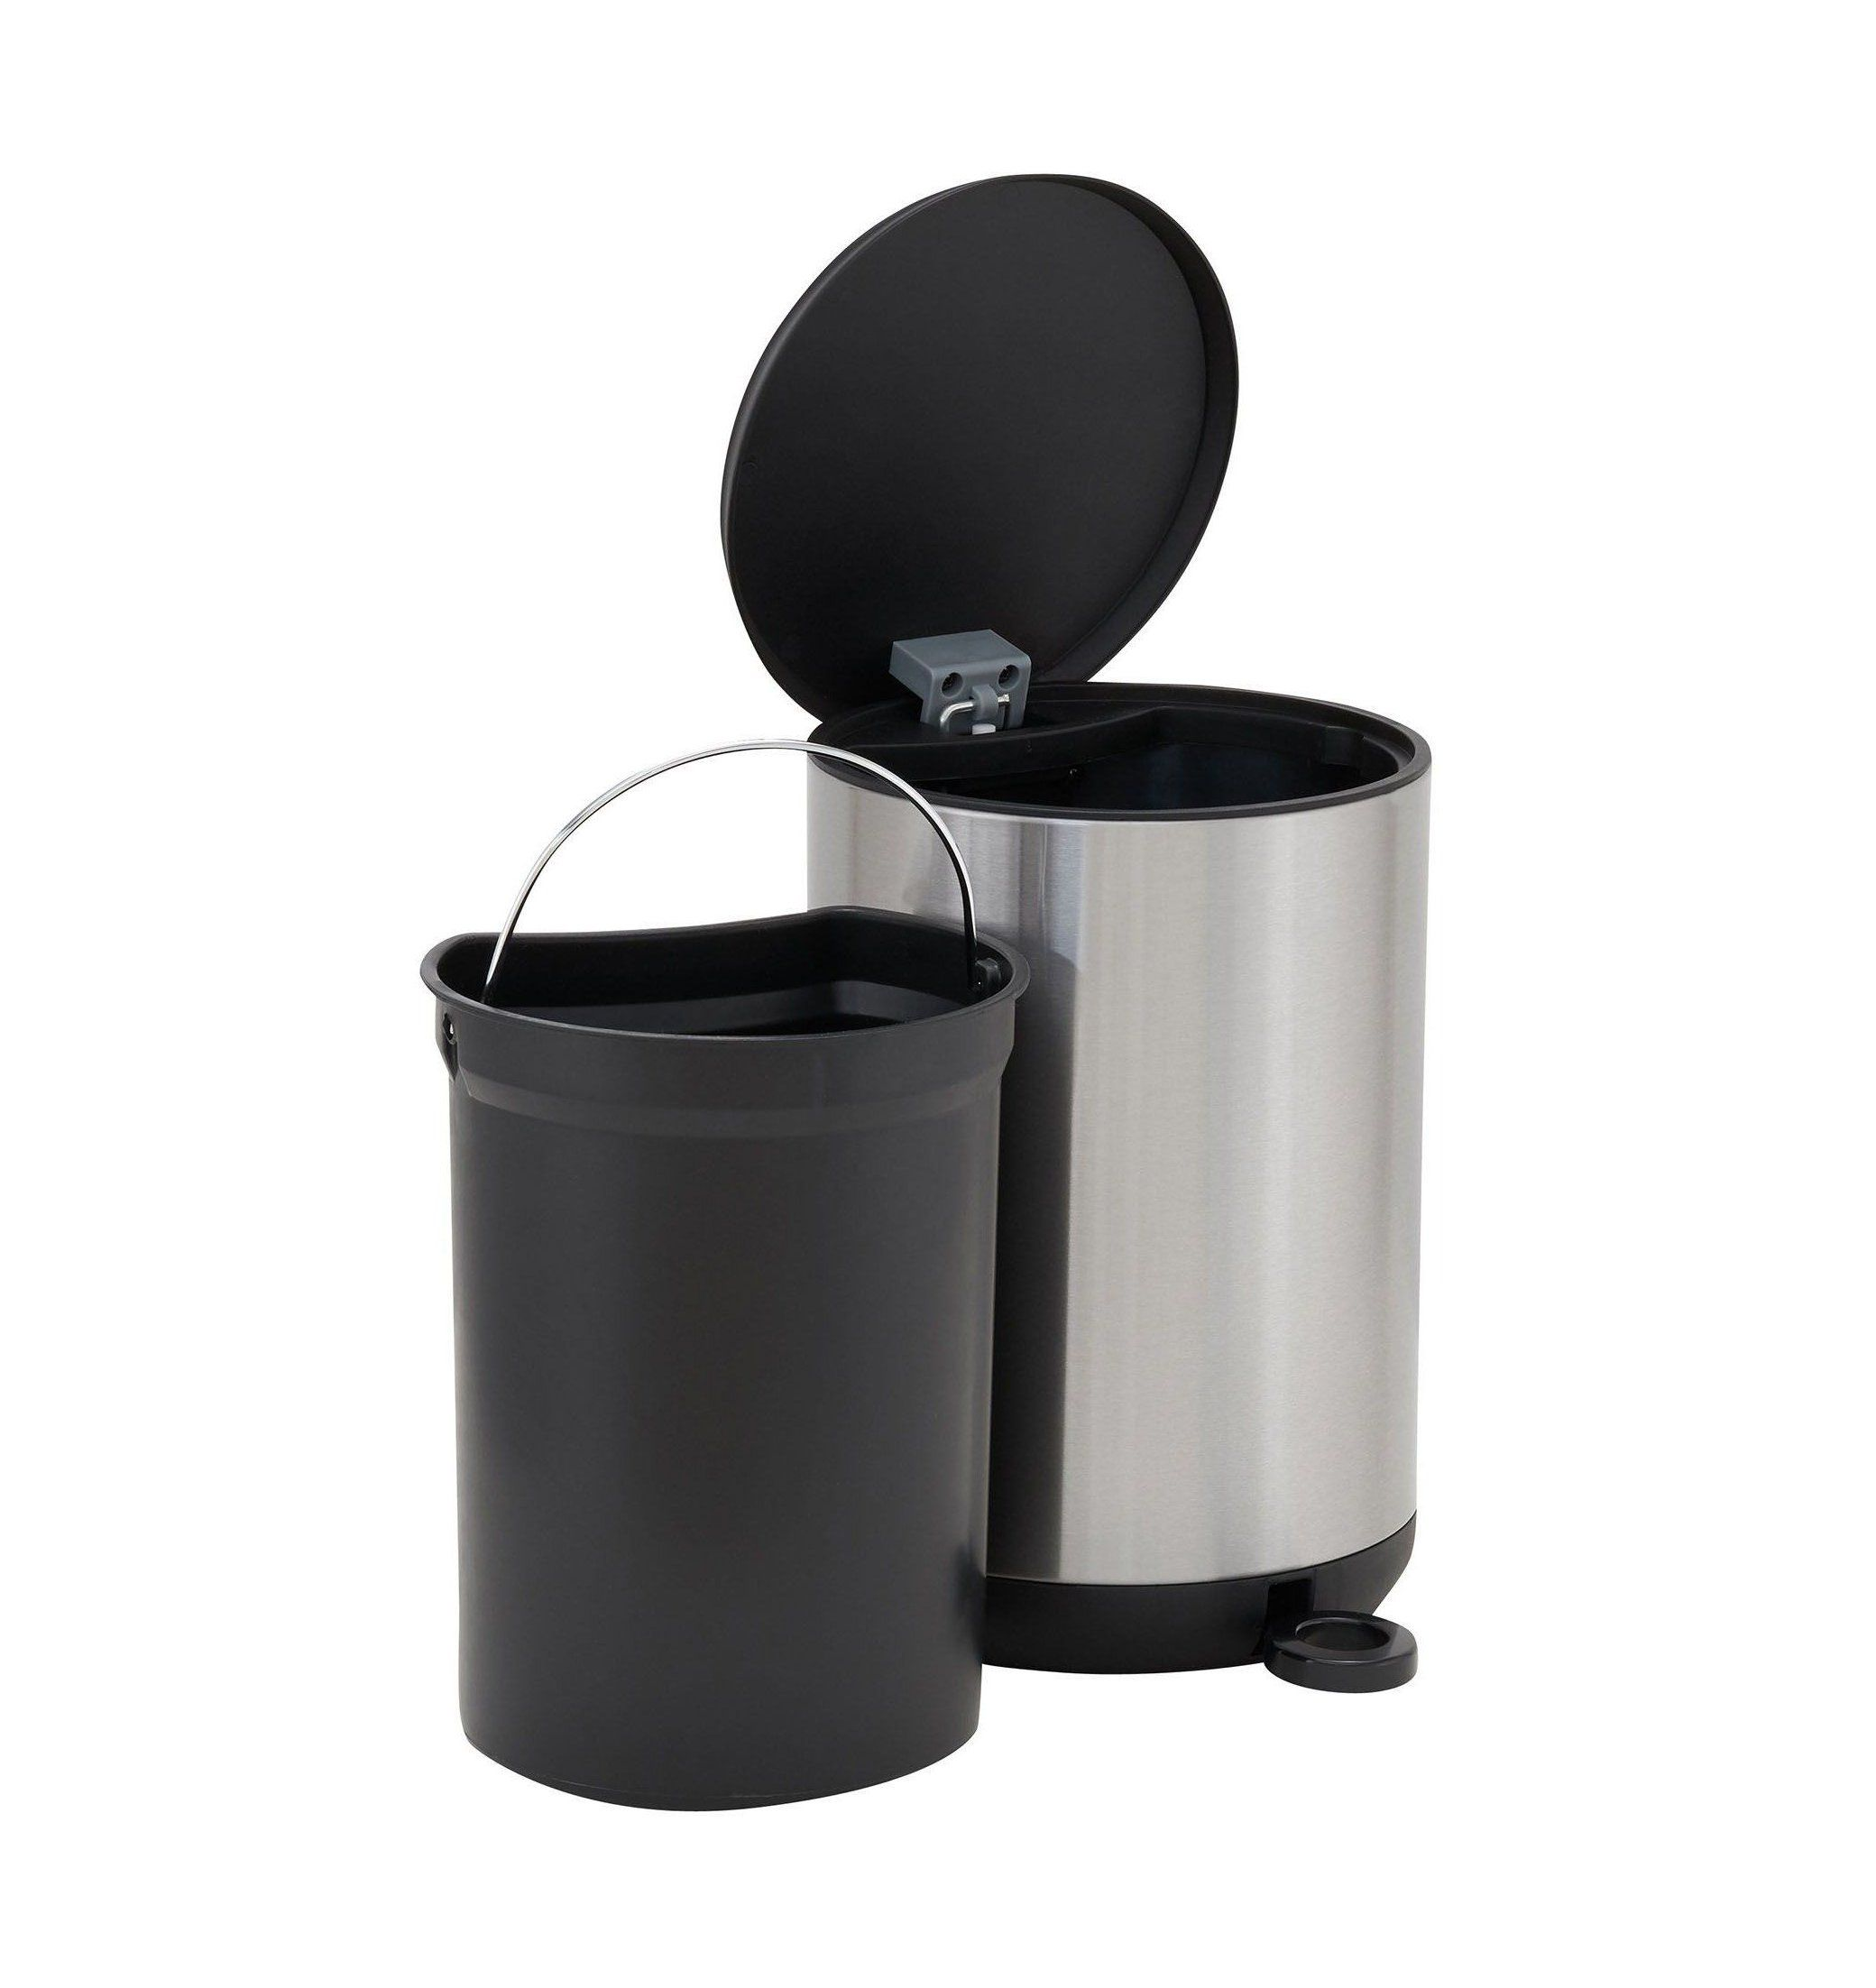 Bathroom Trash Can With Lid And Foot Pedal Bathroomtrashcanwithlidandfootpedal Round Trash Can 5 Li In 2020 Trash Can Bathroom Trash Can Household Essentials